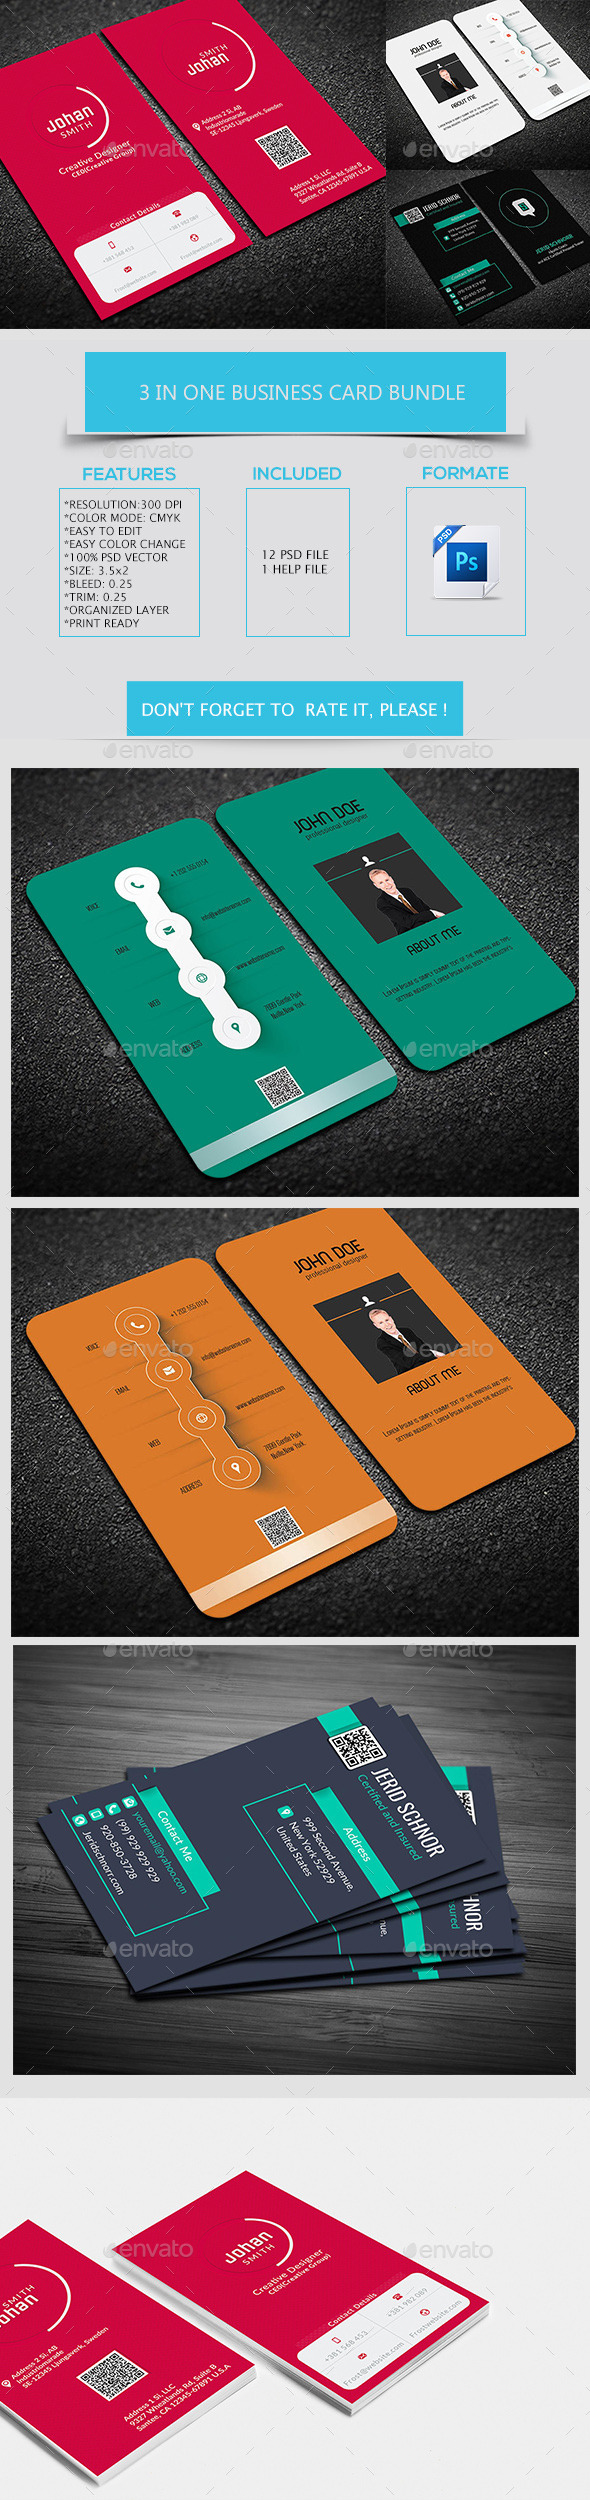 3 in one business card bundle template design download httpgraphicriver